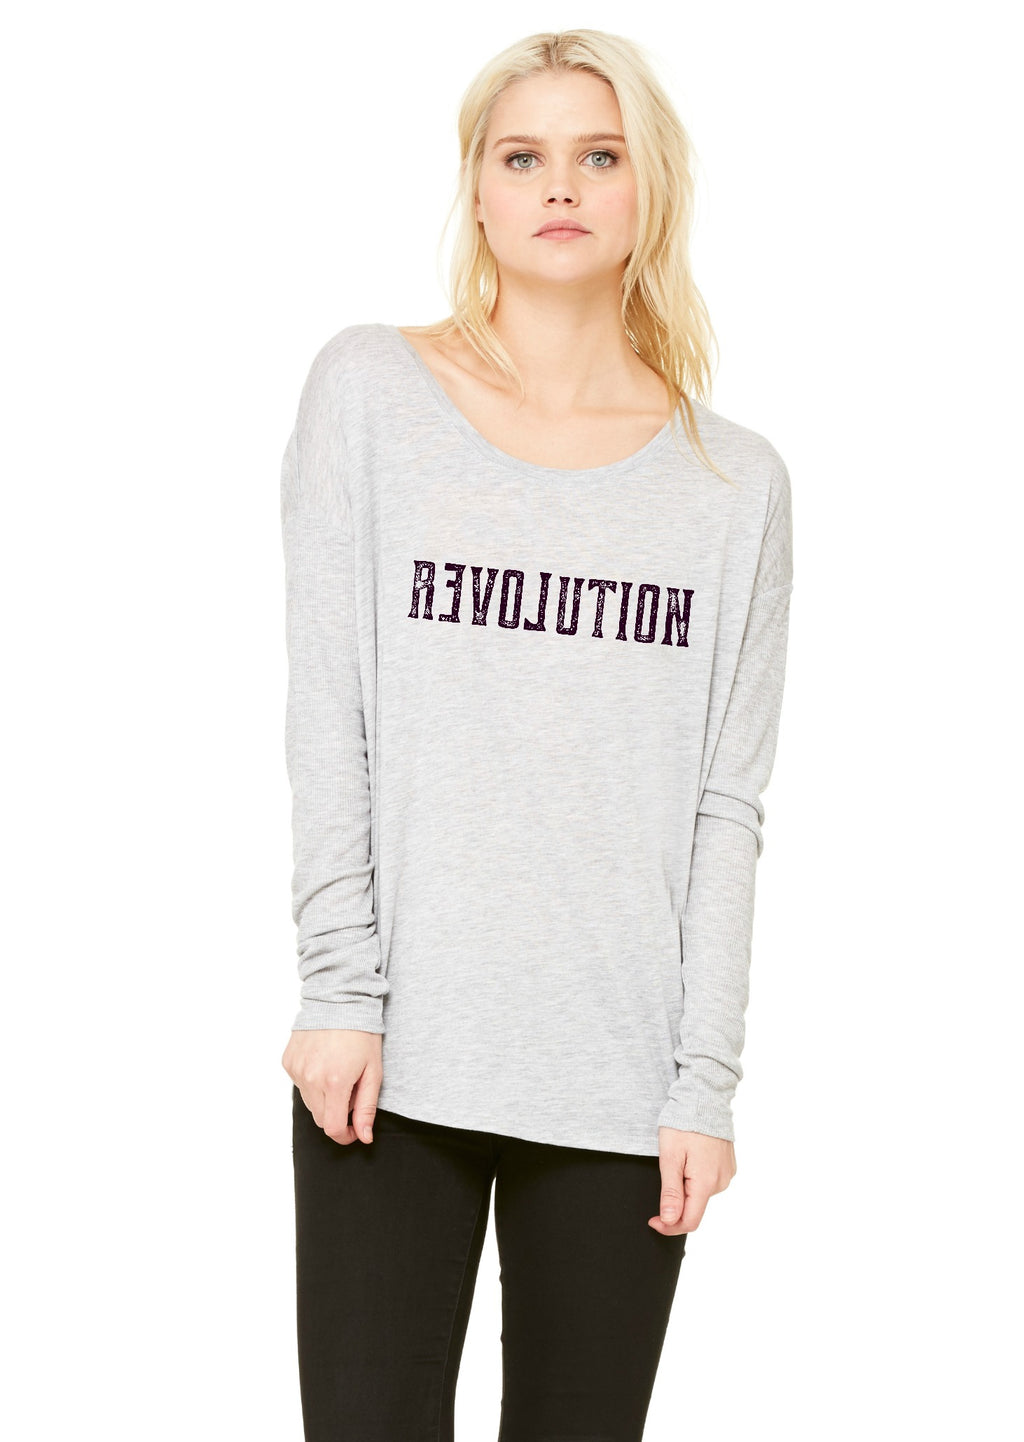 Revolution Ladies Long Sleeve Tshirt